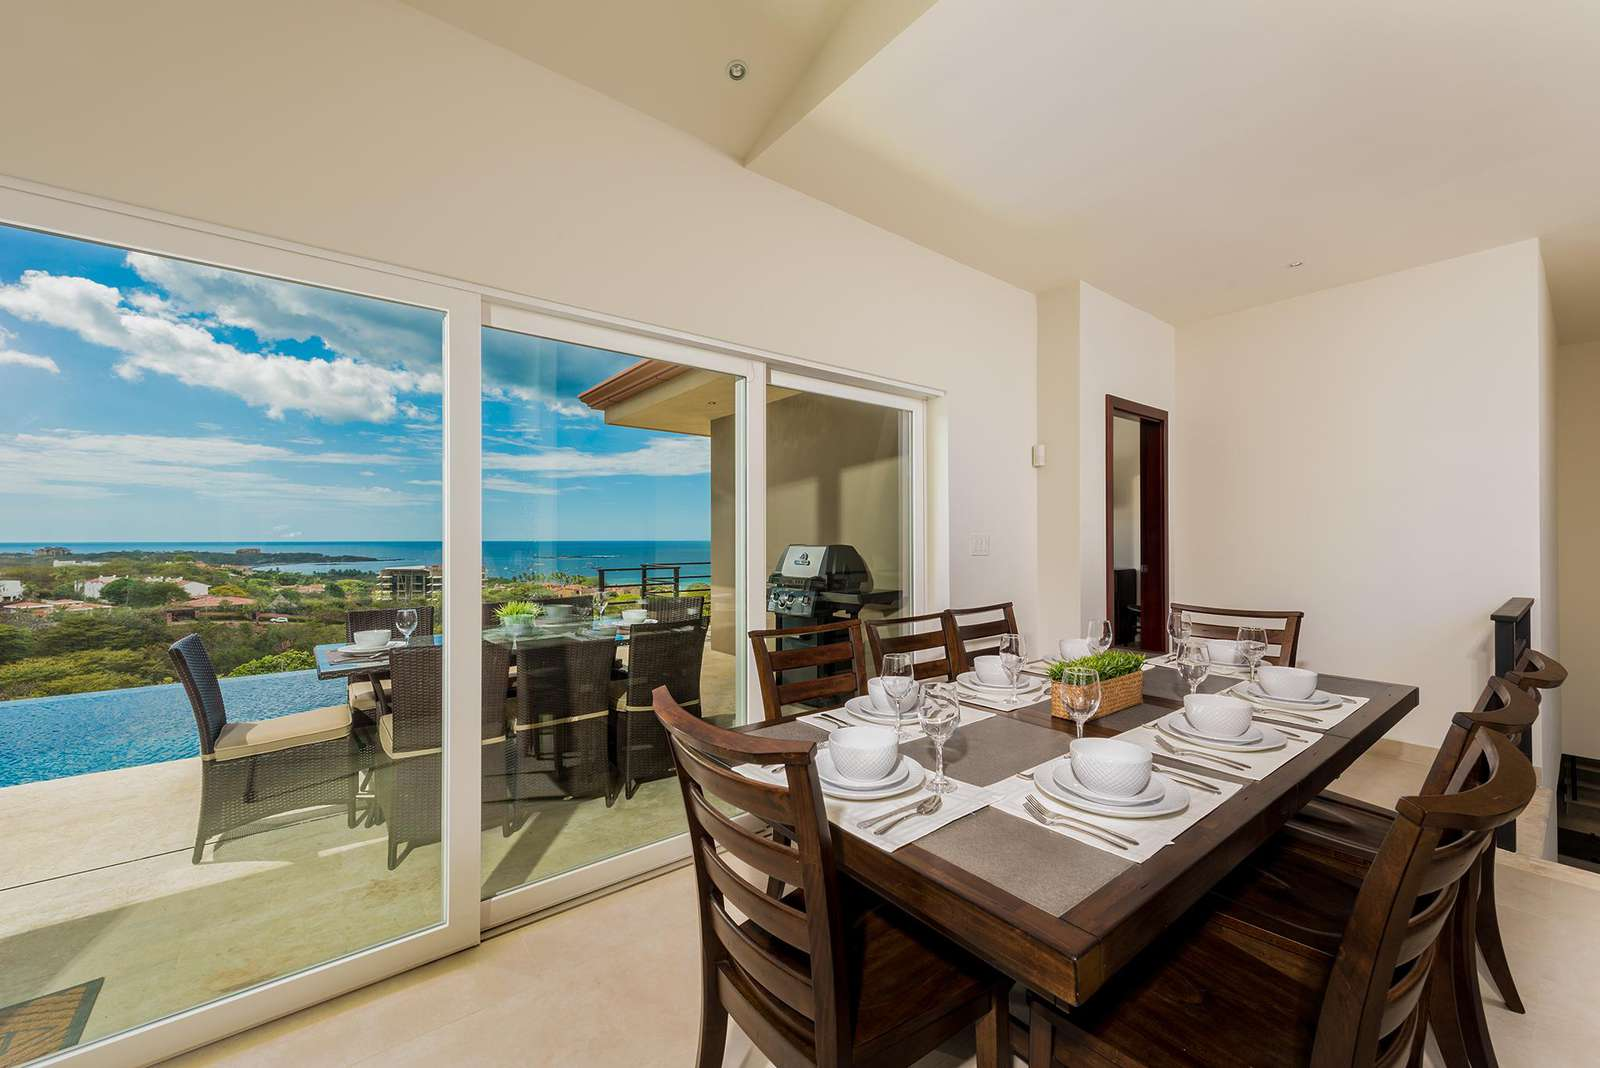 Dining area with a view